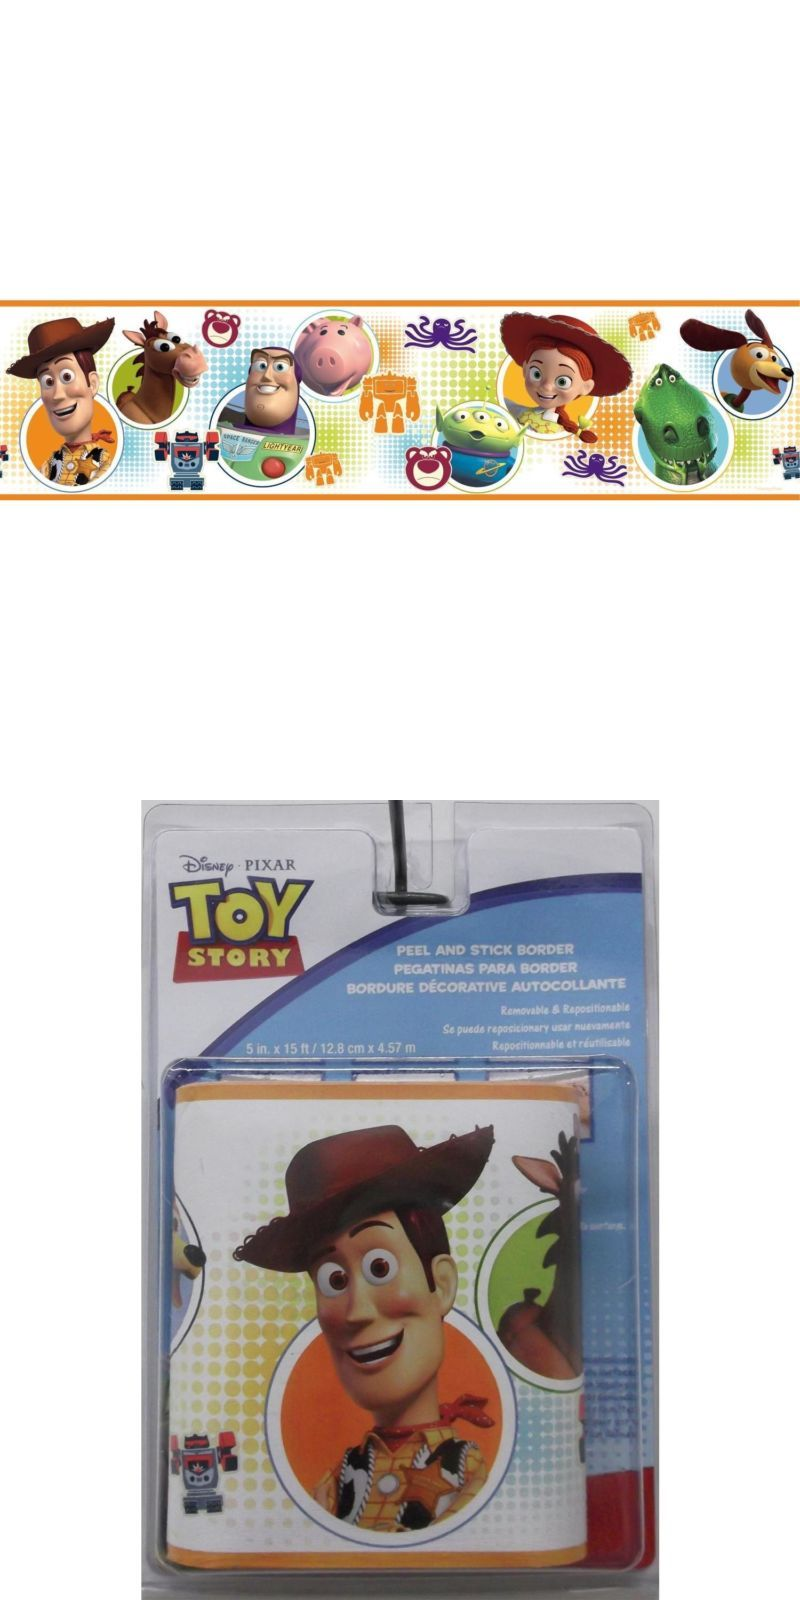 Bedroom Playroom and Dorm D cor 115970 New Toy Story